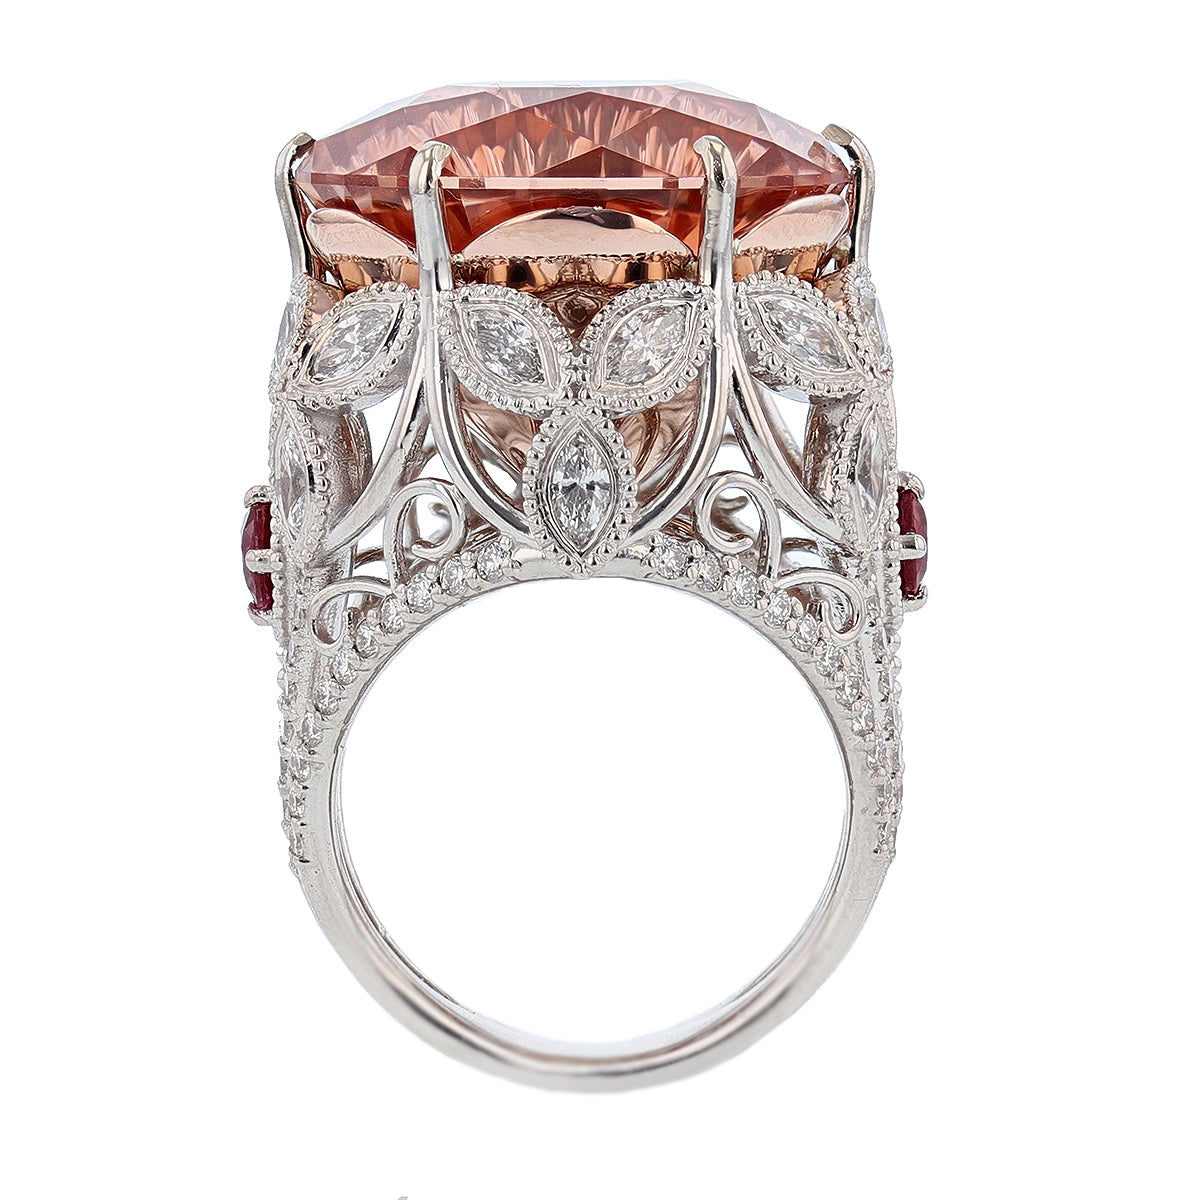 14K White and Rose Gold 23.40Ct Morganite, Diamond, and Ruby Ring - Nazarelle